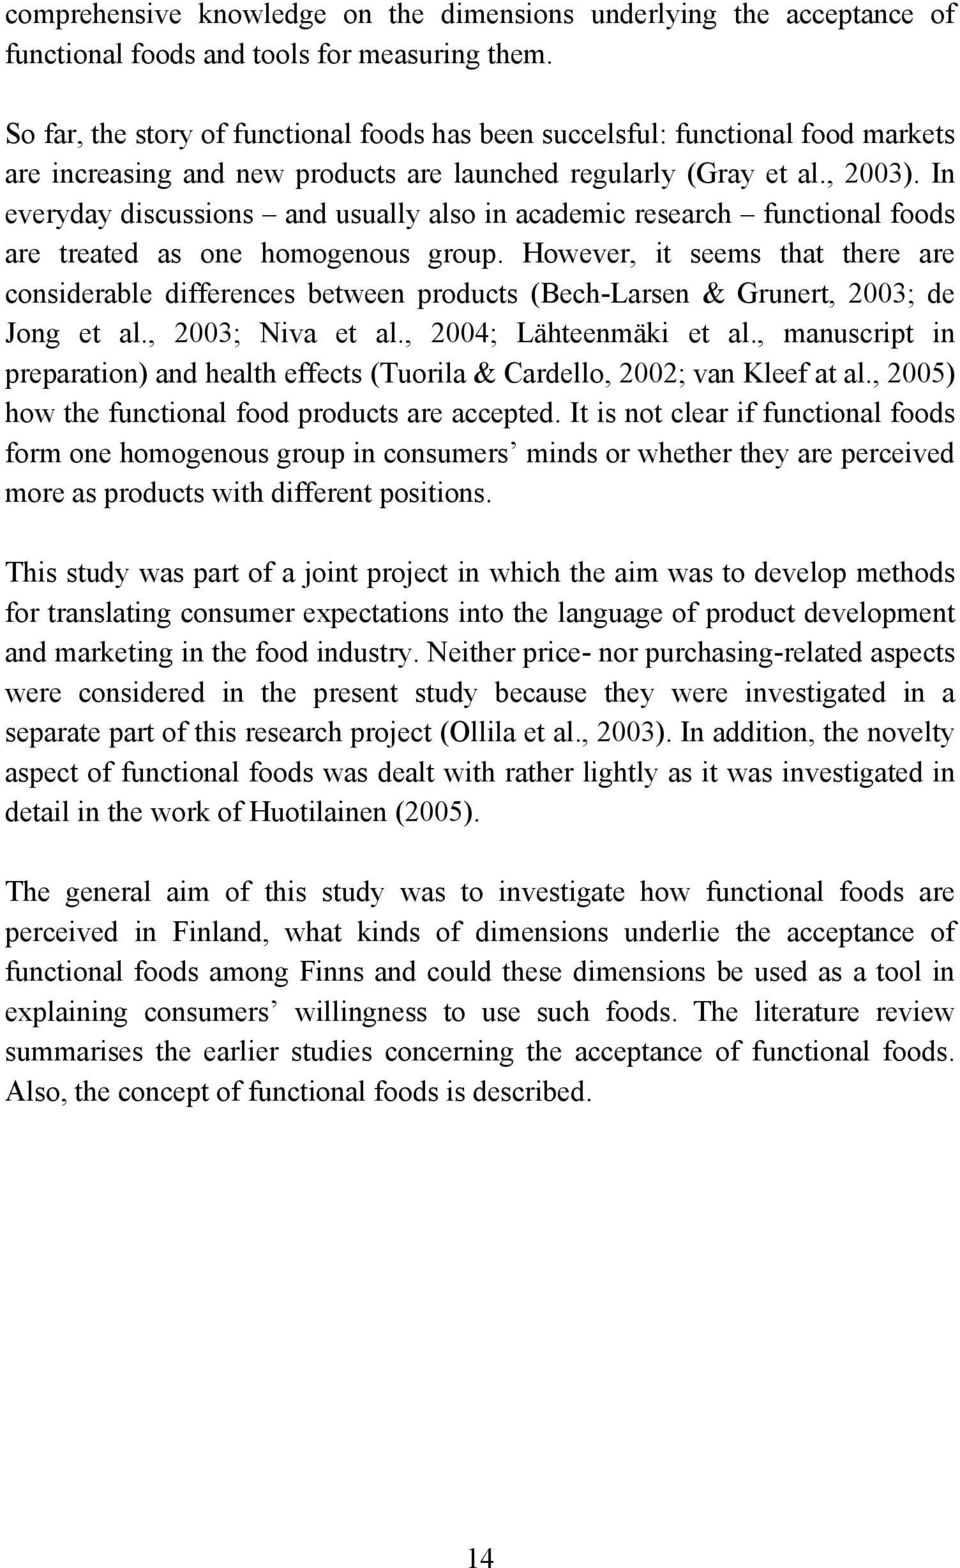 In everyday discussions and usually also in academic research functional foods are treated as one homogenous group.